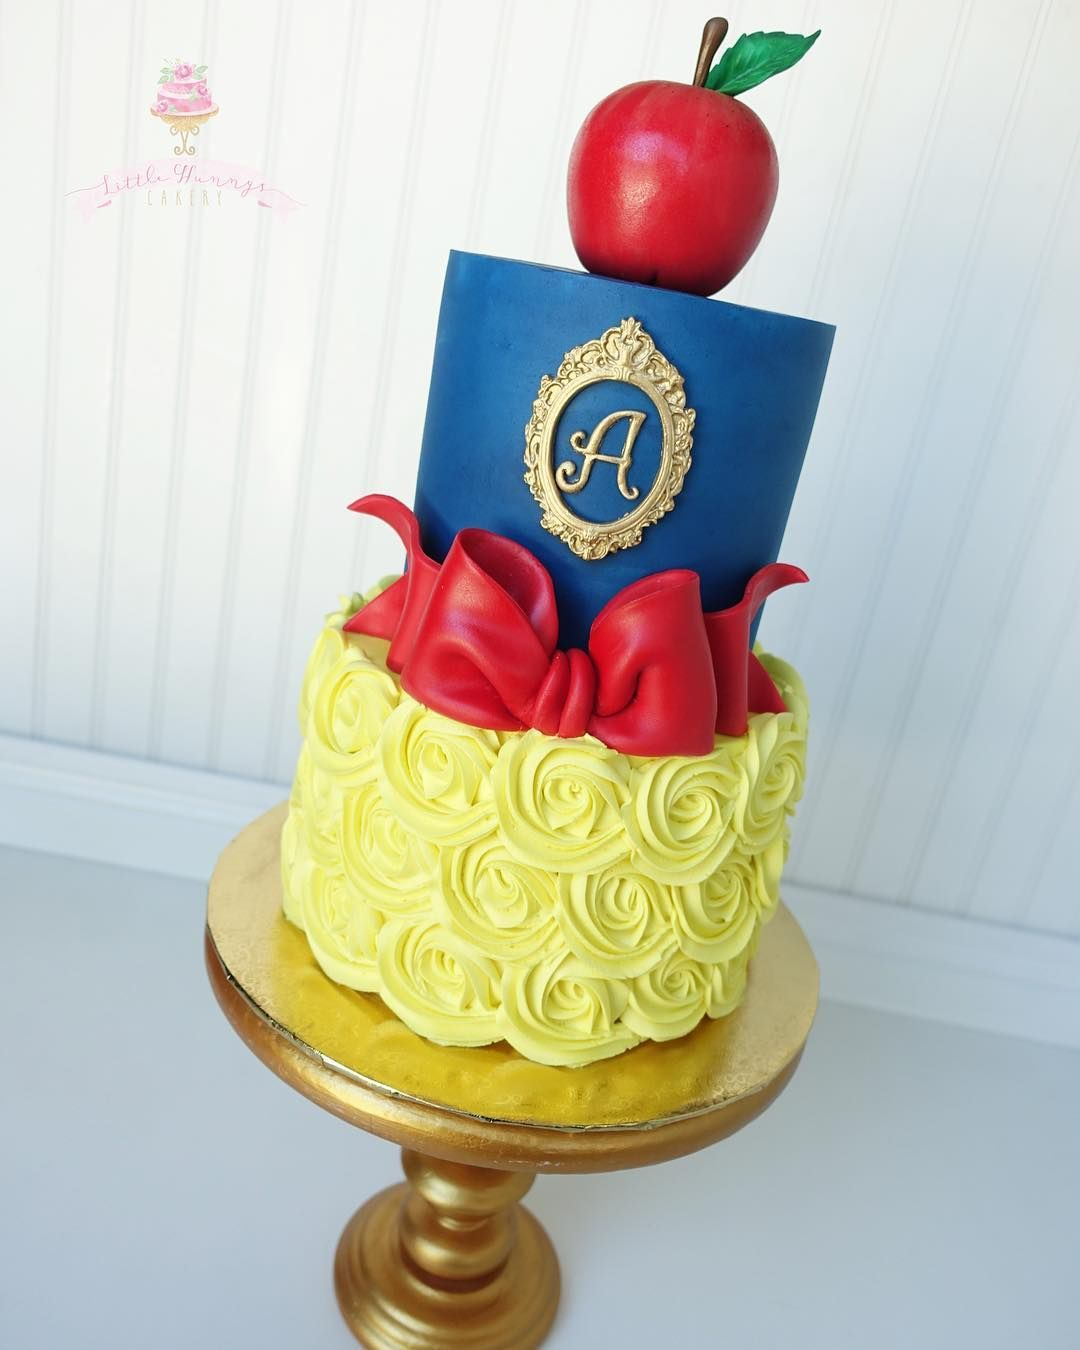 "Little Hunnys Cakery on Instagram: ""Snow White"